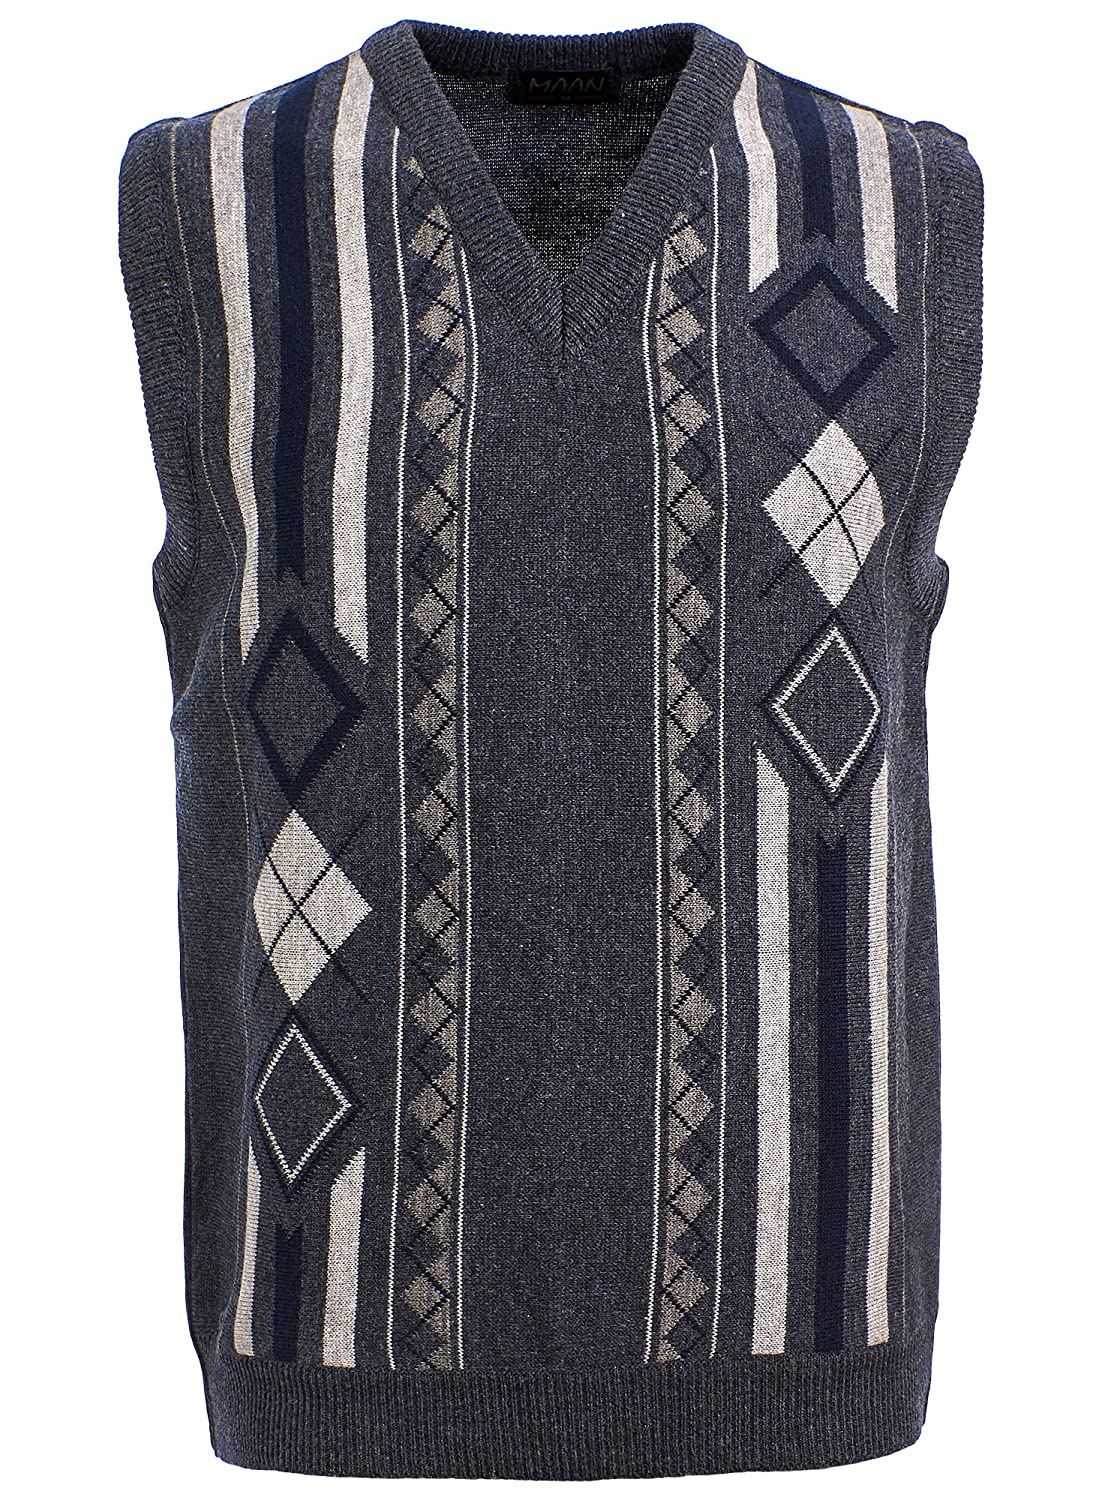 Men's Vintage Style Clothing Mens Knitted Sleeveless Tank Top V Neck Knitted Slipover Diamond Pattern £20.95 AT vintagedancer.com